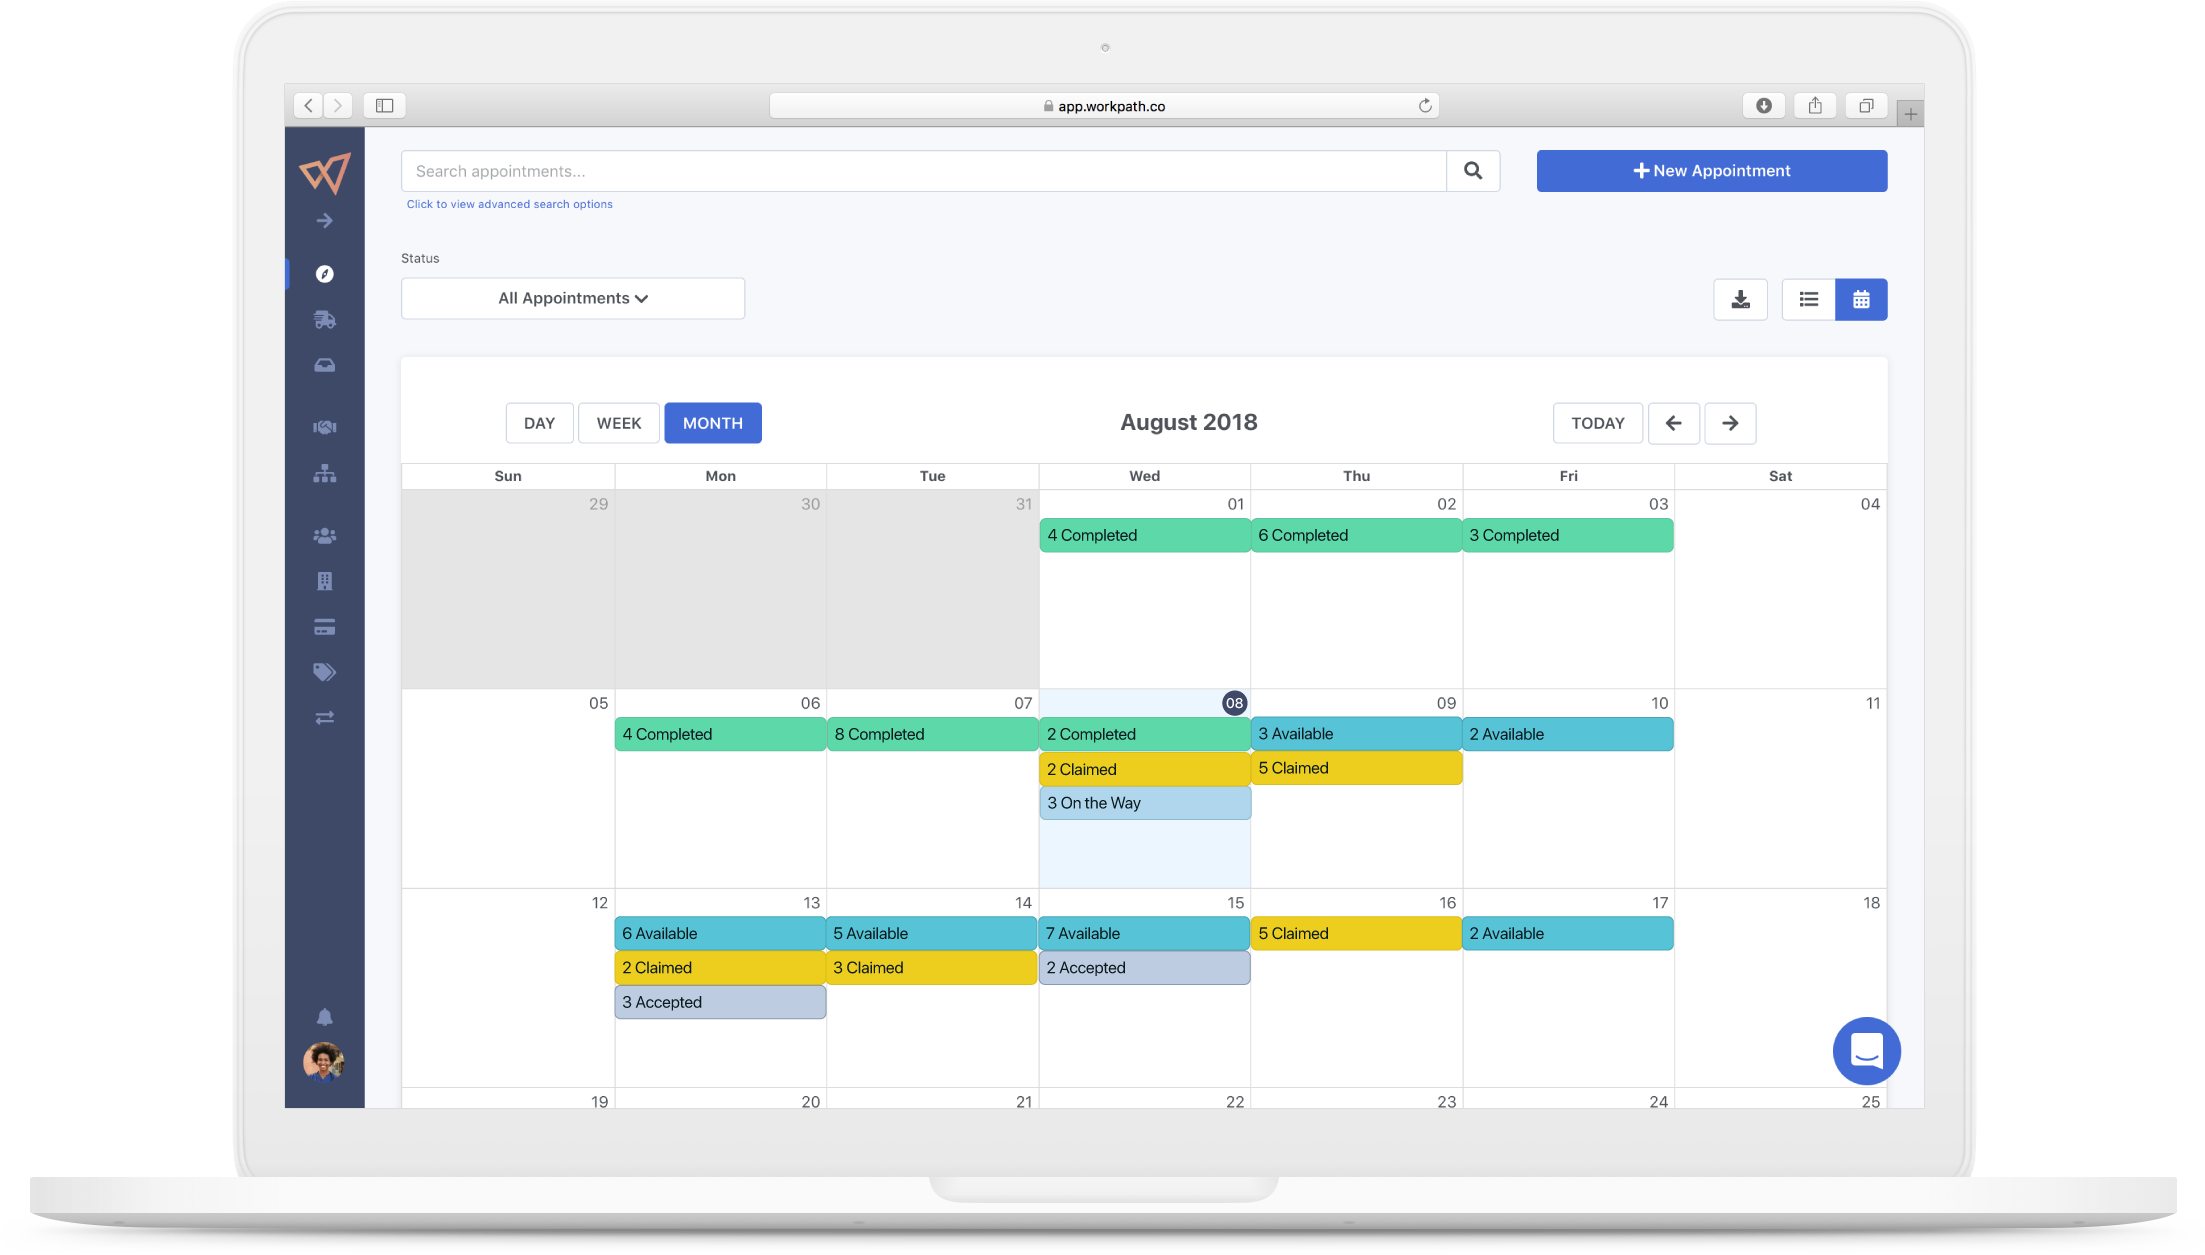 The calendar view within Workpath's appointments screen shows scheduled daily, weekly and monthly appointments with color coded status indicators